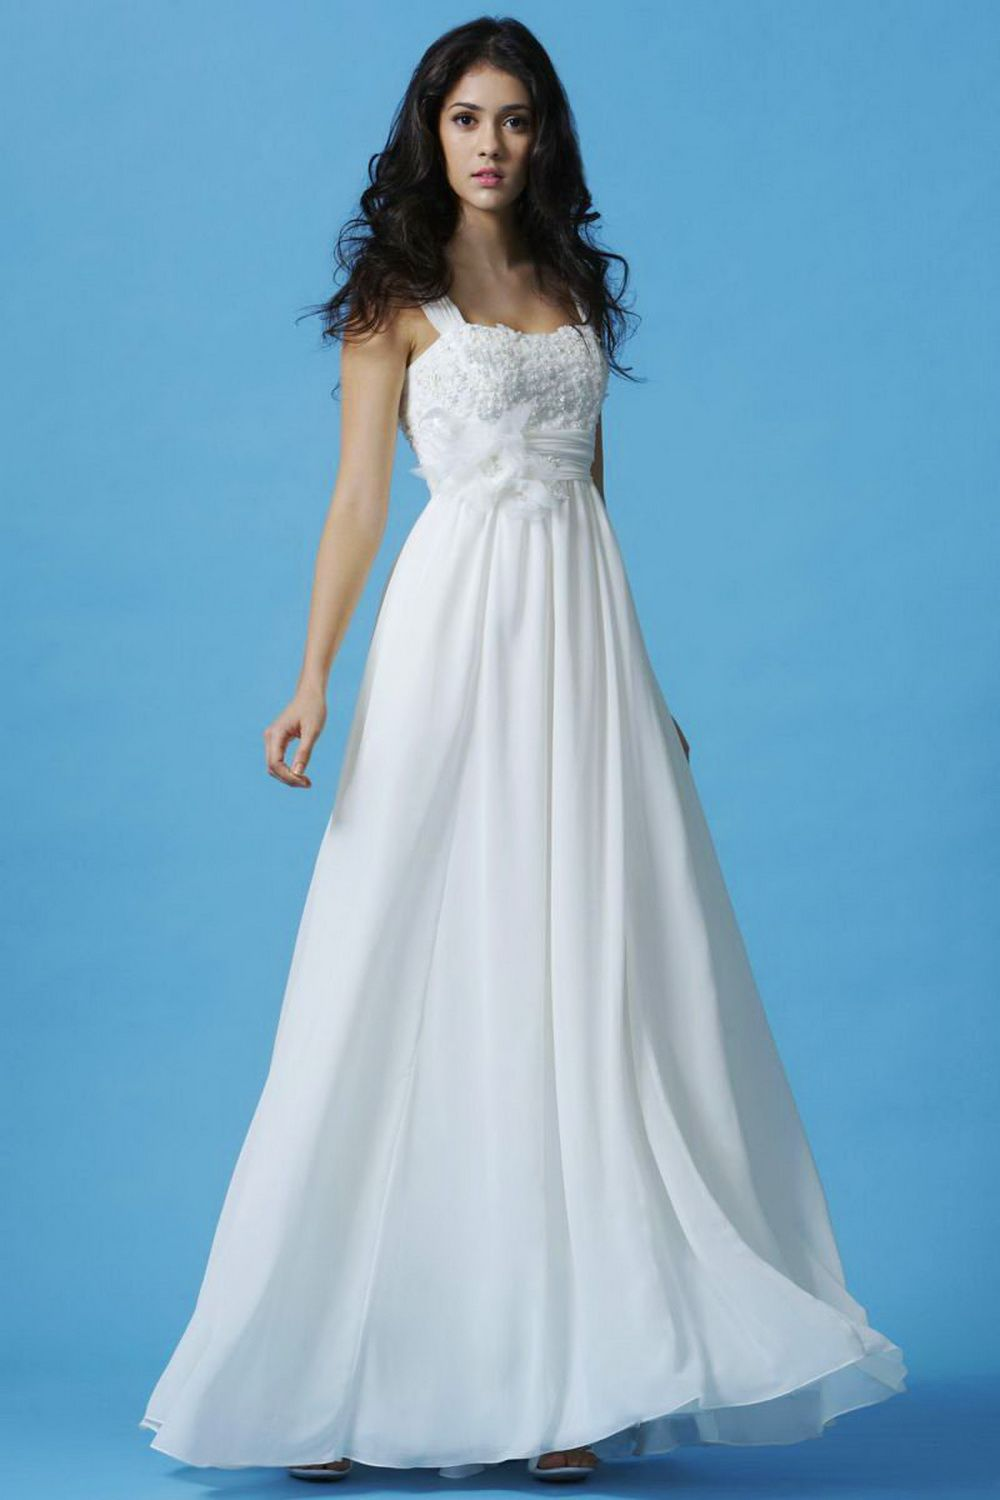 Z Wedding Gowns 10